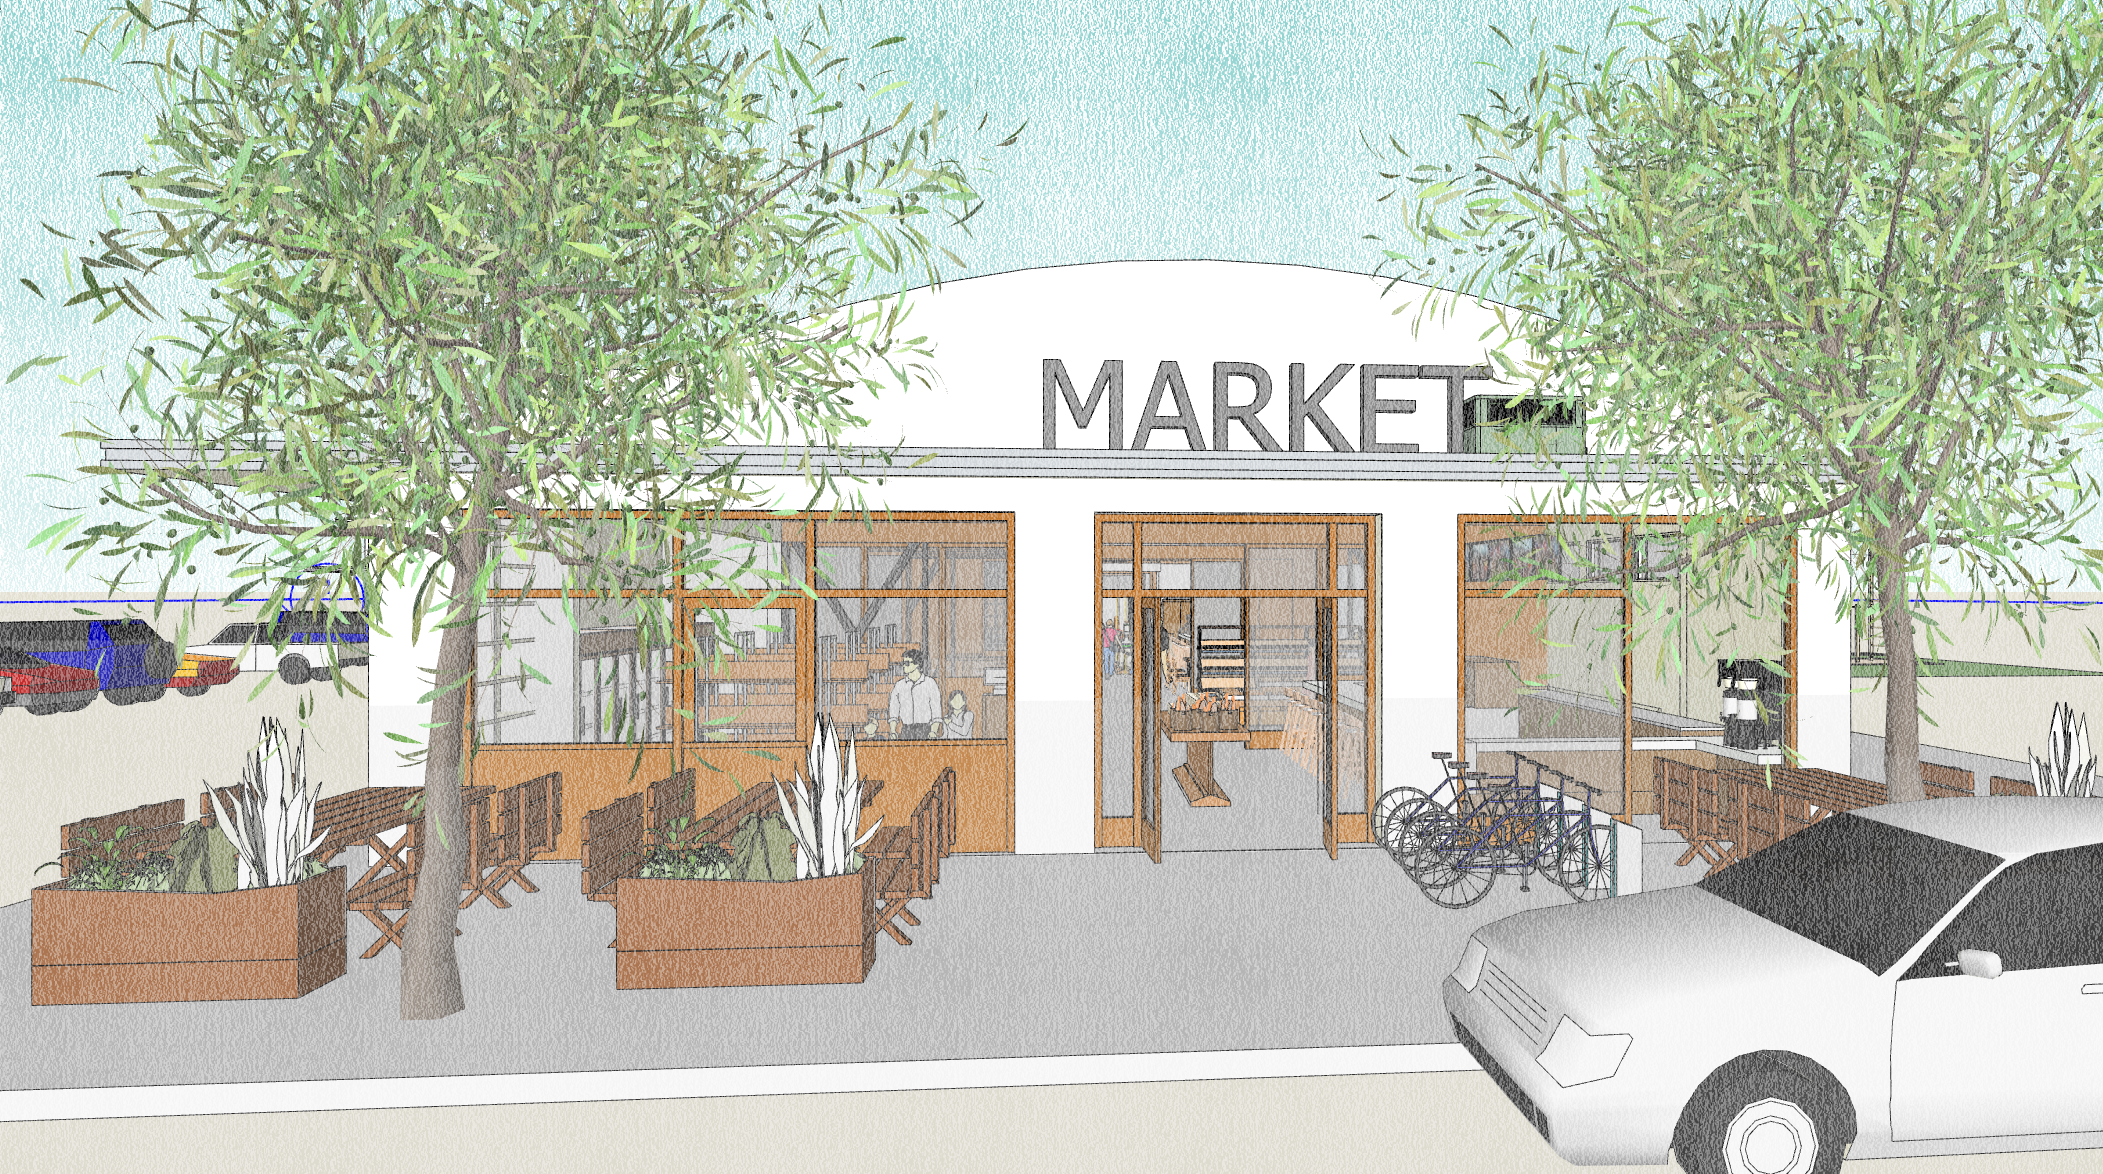 Conceptual exterior image of West Entrance at Hartson St., a potential part of Phase 1 of the Historic Food City Building.  This image was created by Kelly & Morgan Architects for exclusive use by Grub LLC. All Rights Reserved.